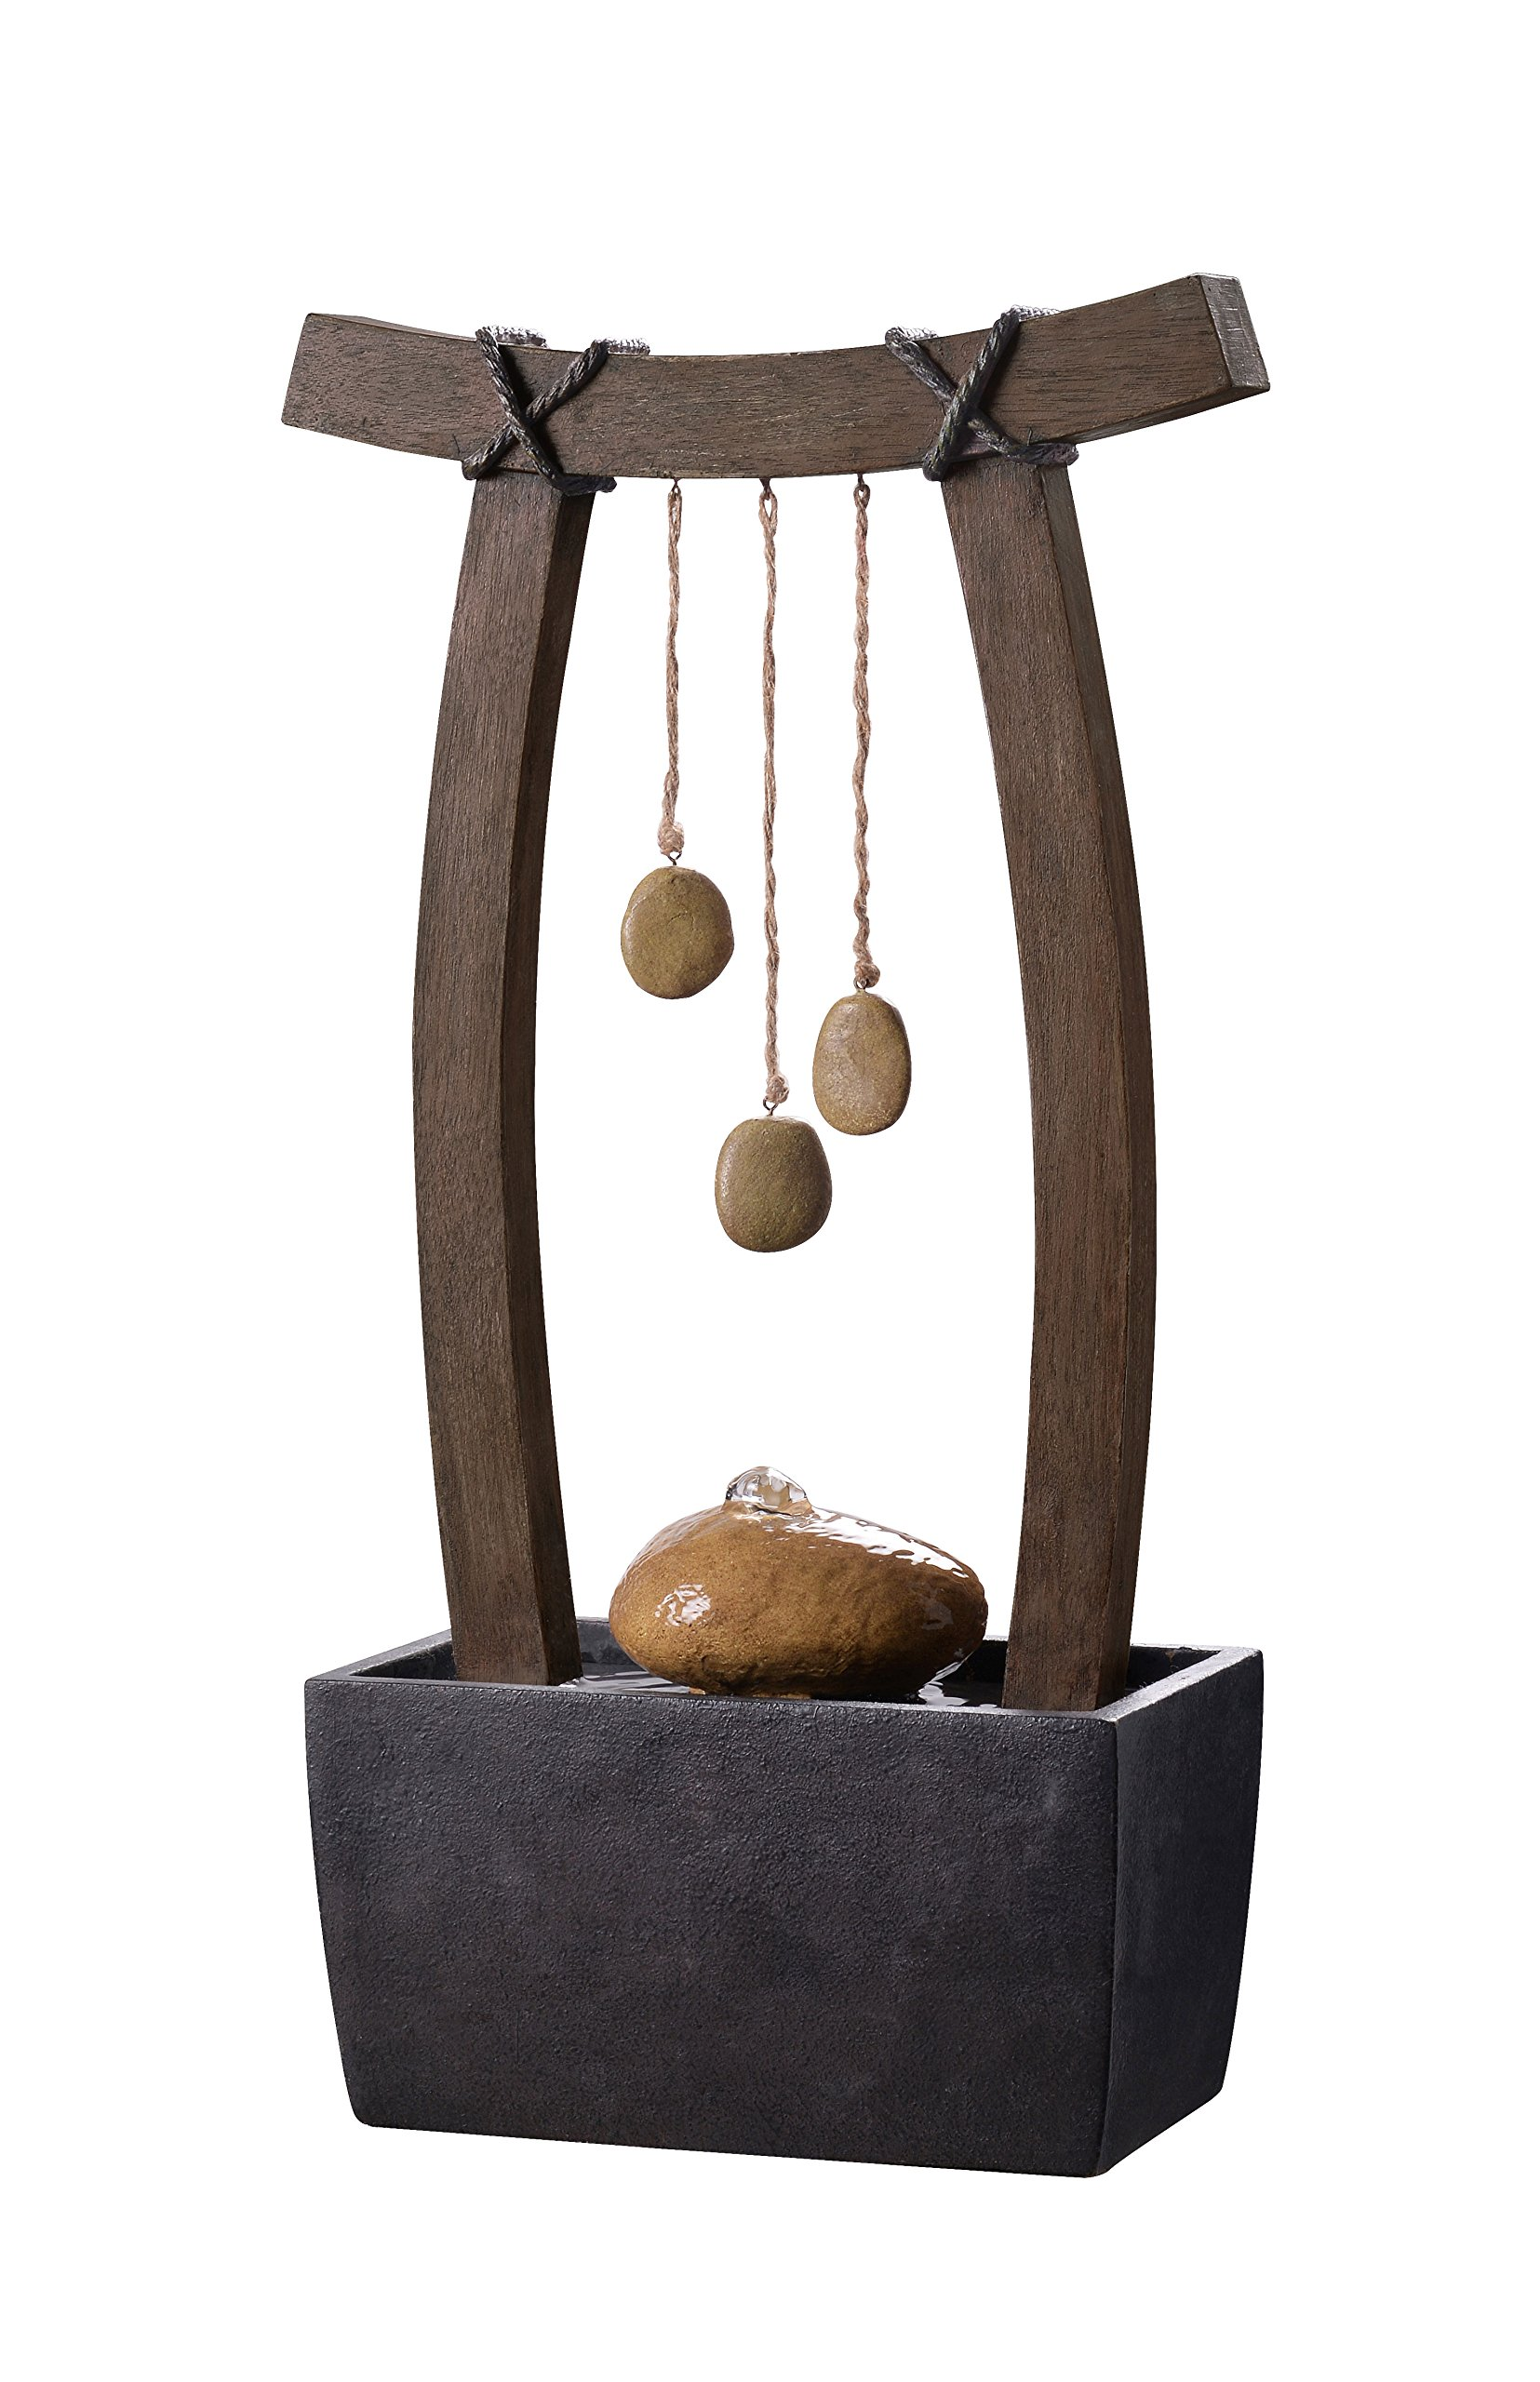 Kenroy Home 51047WDG Reflection Fountains, 21.5 Inch Height, Wood Grain Finish - ZEN TABLE TOP FOUNTAIN: With its three stone accents suspended from a curved faux wood archway, this zen table top fountain adds plenty of Asian-influenced style and the soothing sight and sound of flowing water to your indoor and outdoor living spaces. Place on top of your home office desk, patio table, or accent table, or use as a humidifier in dry rooms. DIMENSIONS: 21.5 Inch Height, 11.5 Inch Width, 6 Inch Ext THERMAL SENSITIVE PUMPS: Our dynamic thermal-sensitive pumps automatically shut off when the water level is too low to cool the pump, saving energy and preventing pump damage over time - patio, outdoor-decor, fountains - 81B2l8K1r L -